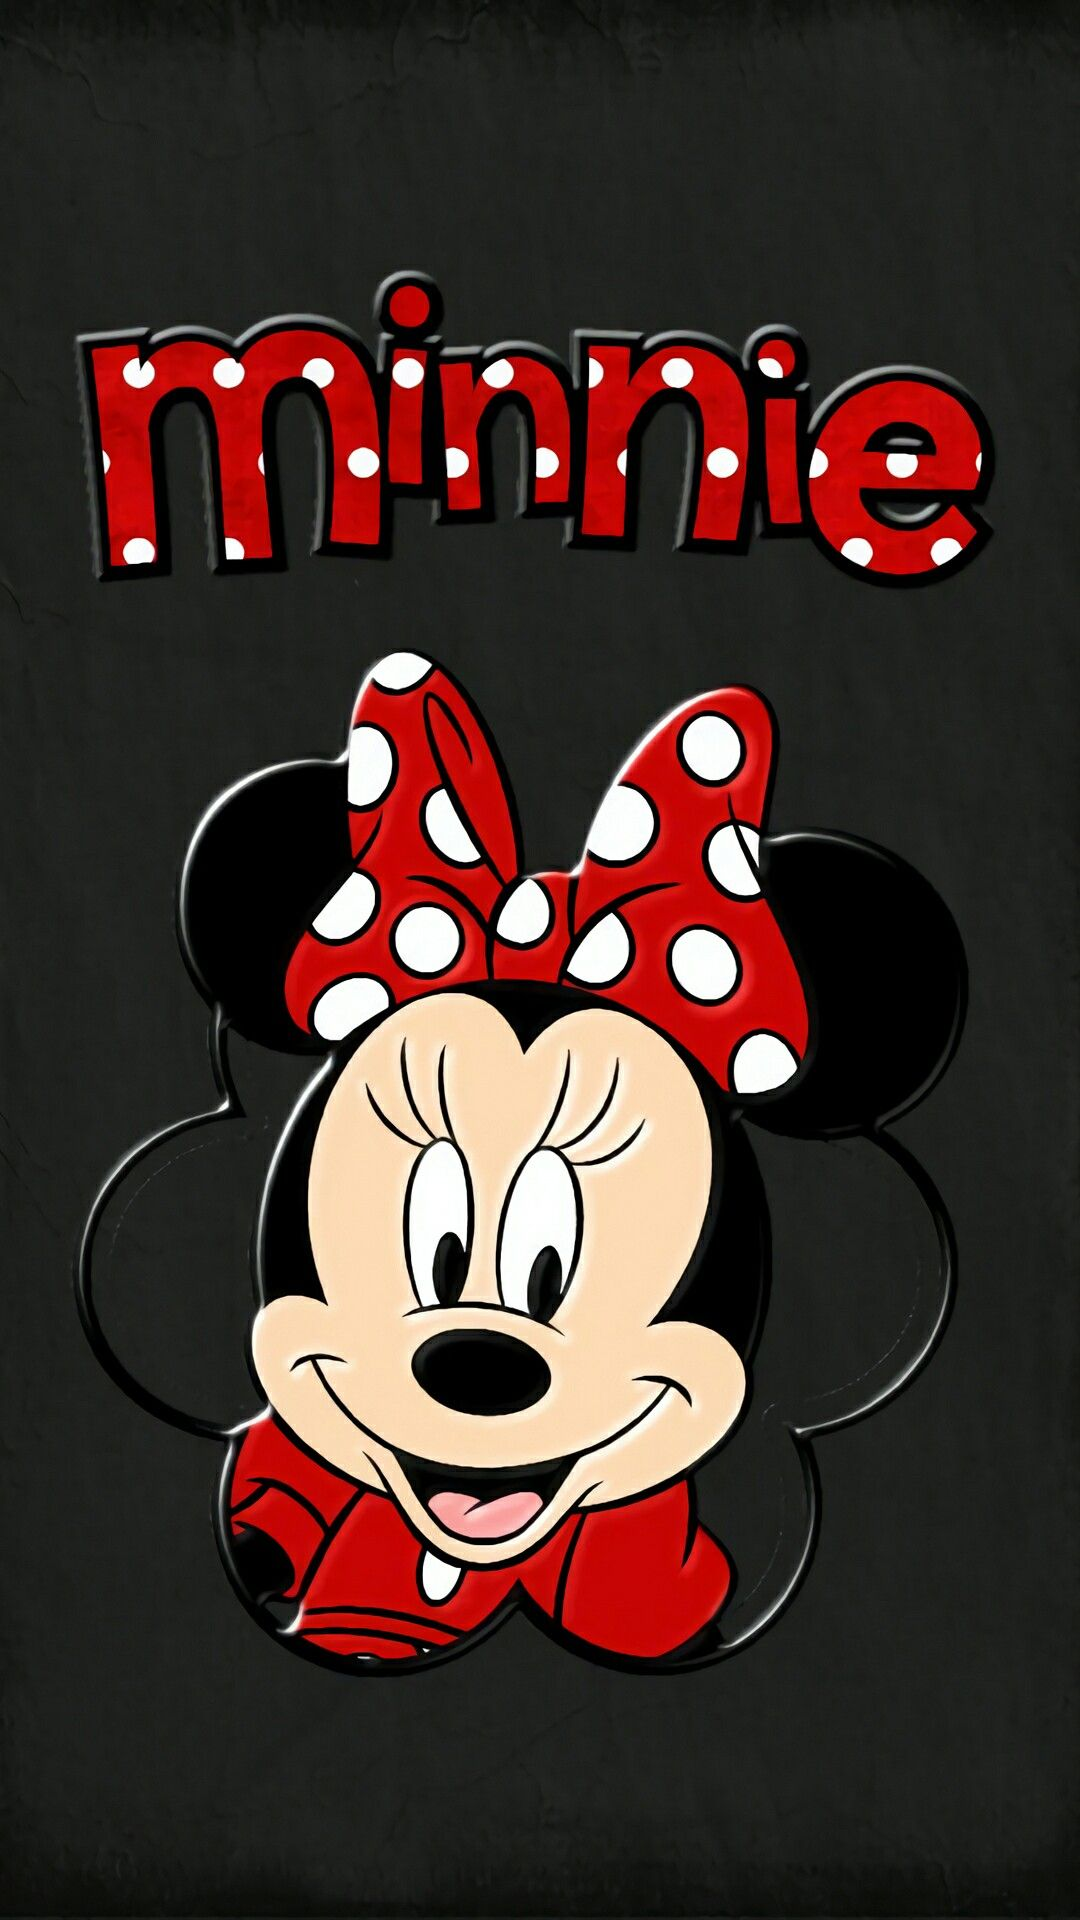 Pin by Jason Baker on Wallpapers (With images) Minnie